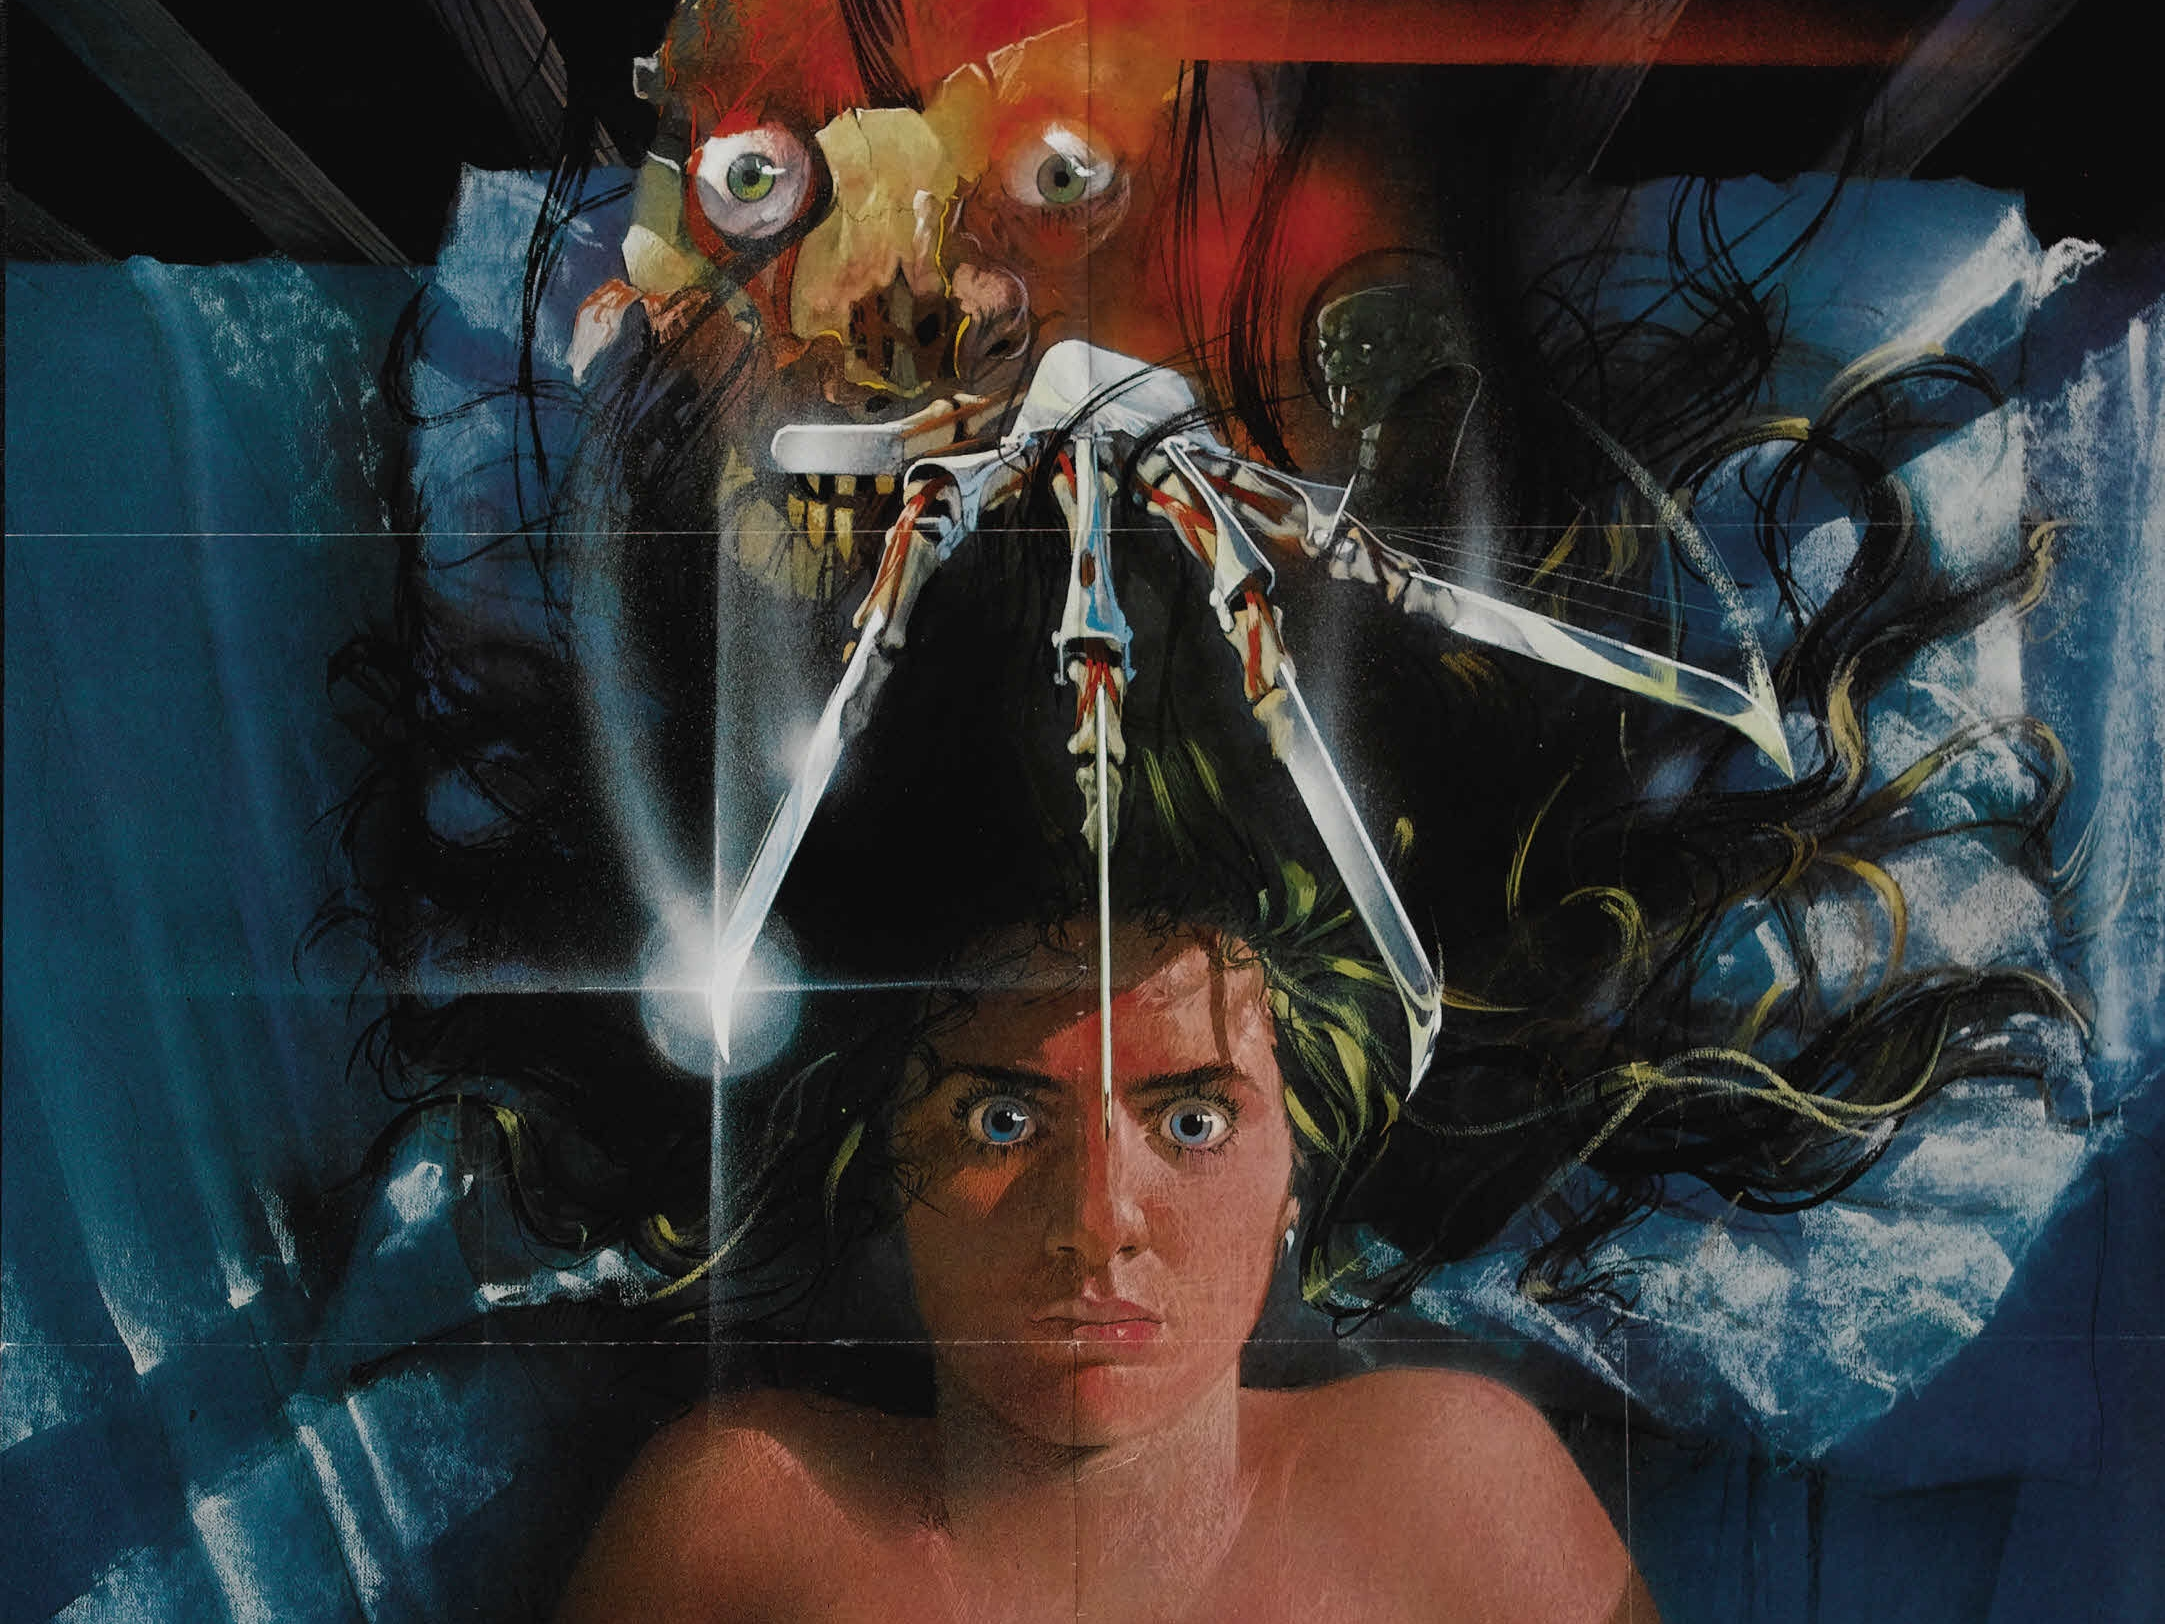 a nightmare on elm street (1984) full hd wallpaper and background